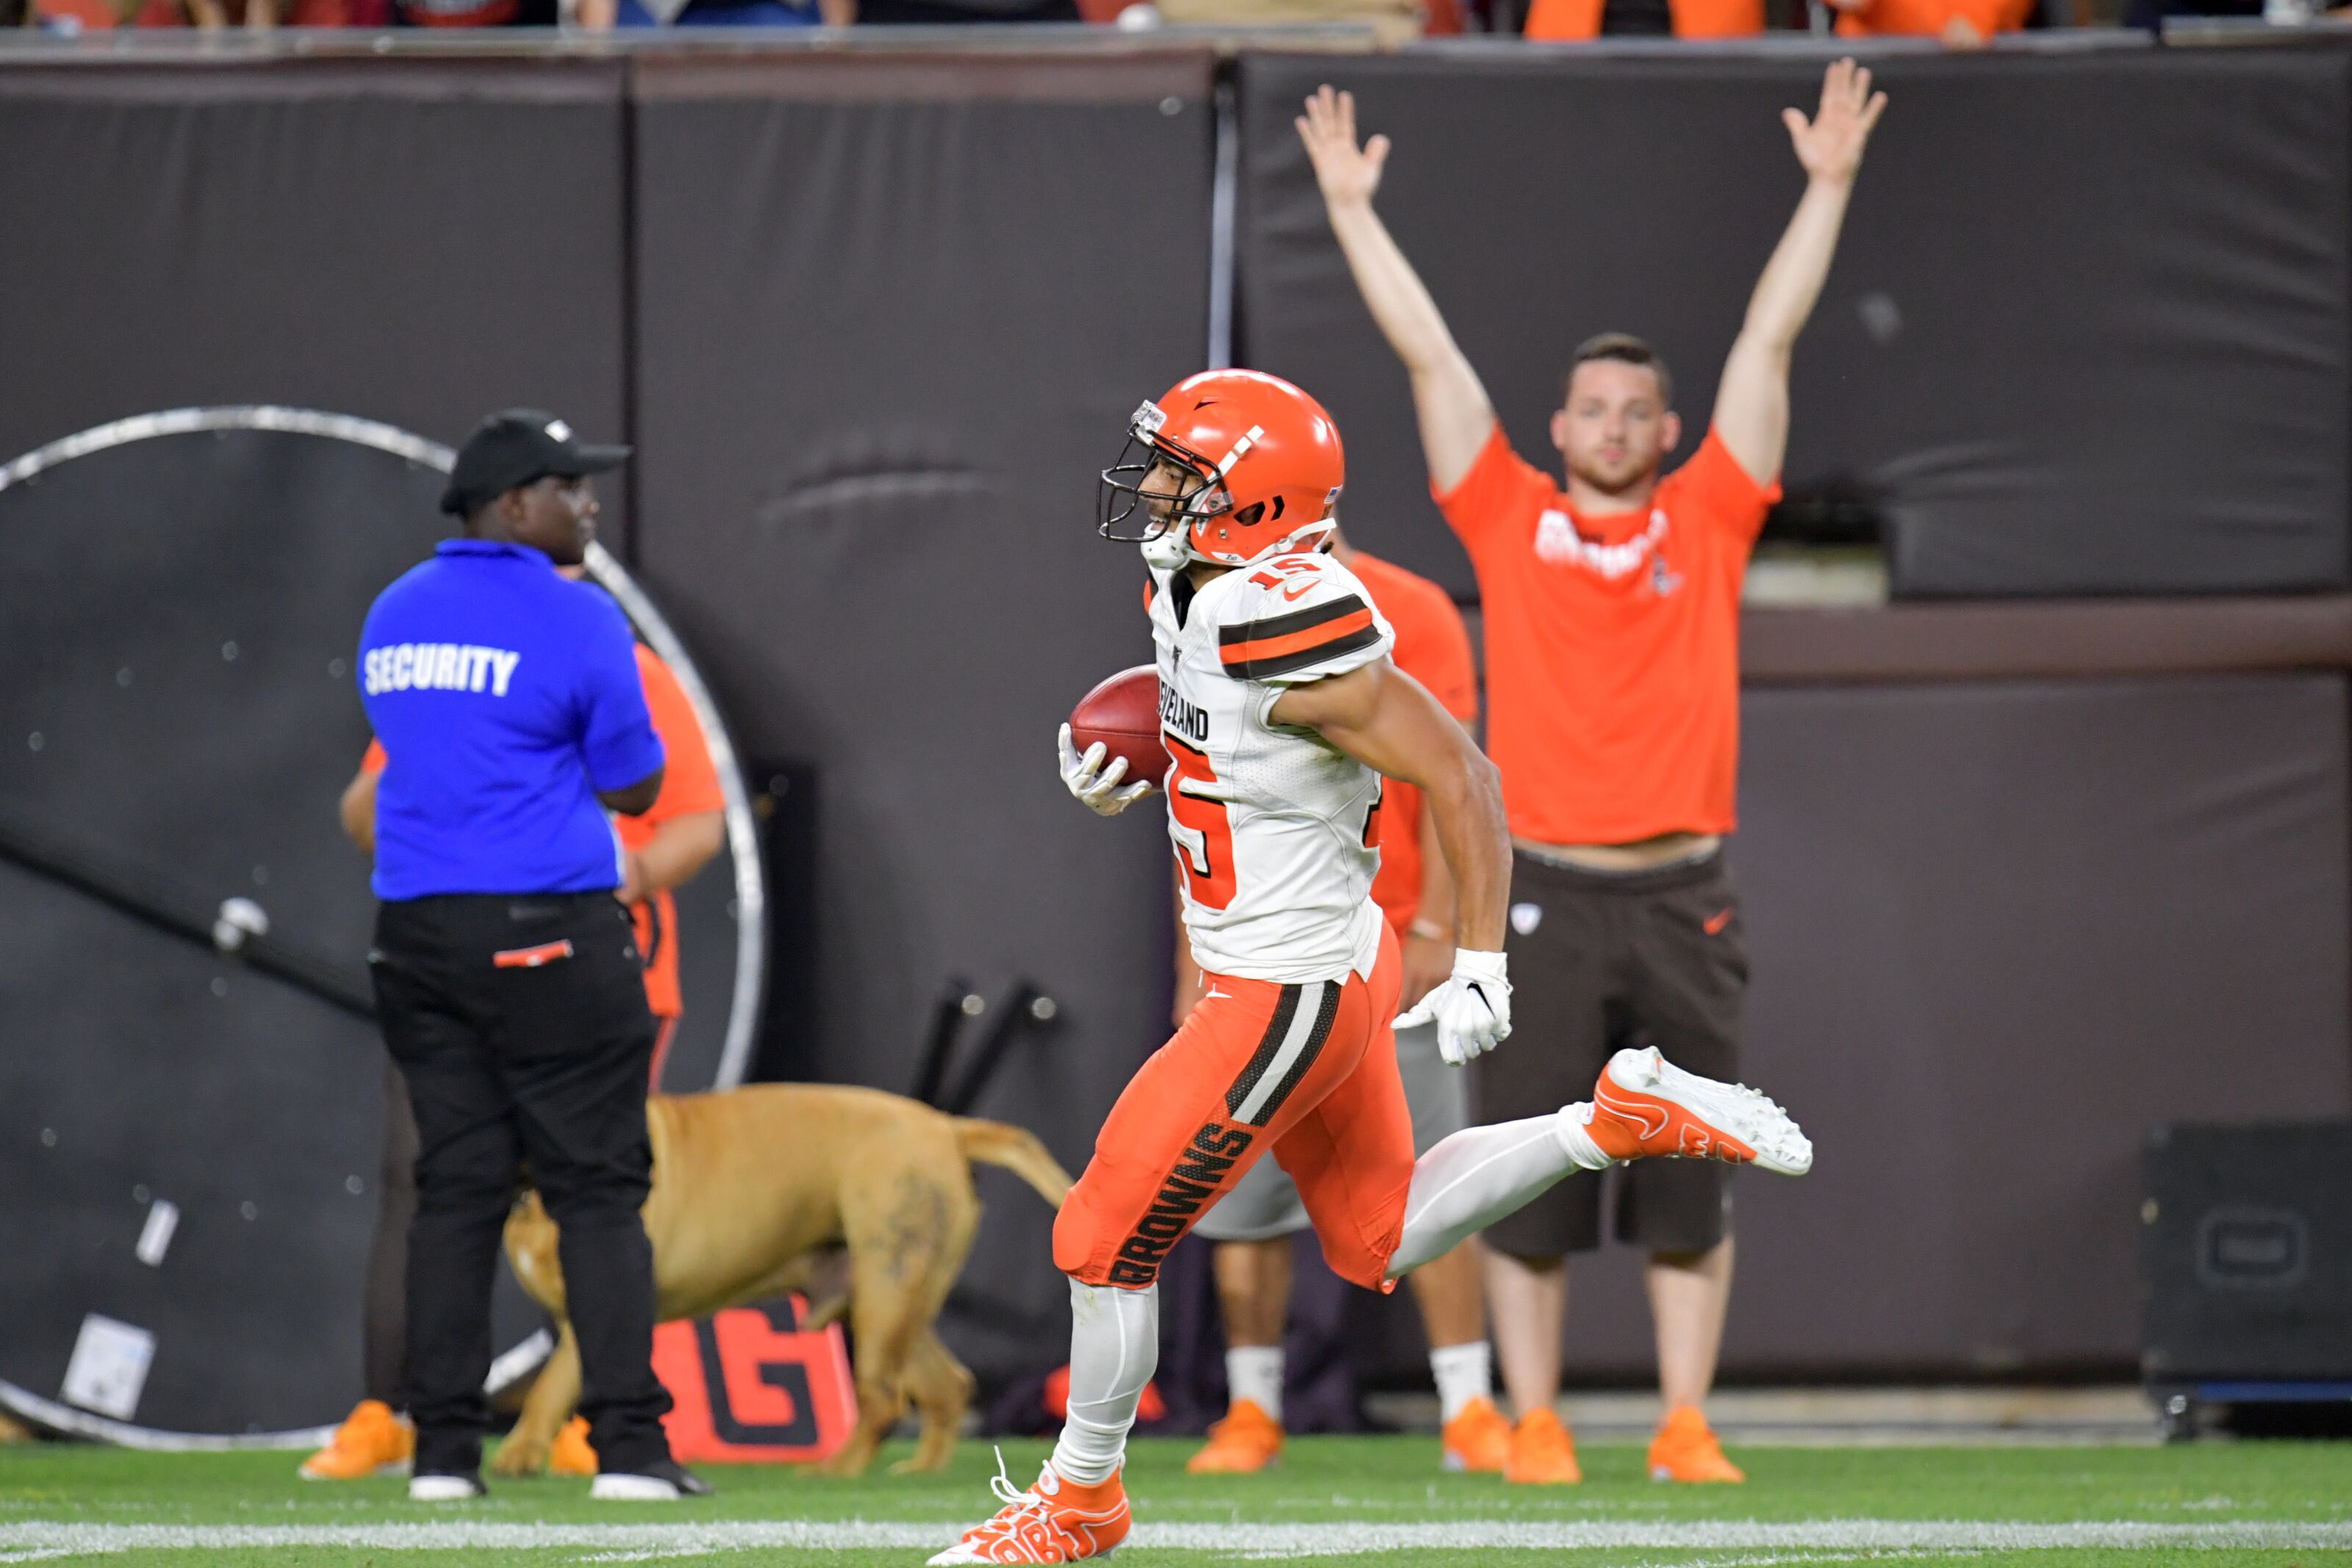 Cleveland Browns: Whose roster spot will Sheehy-Guiseppi take?